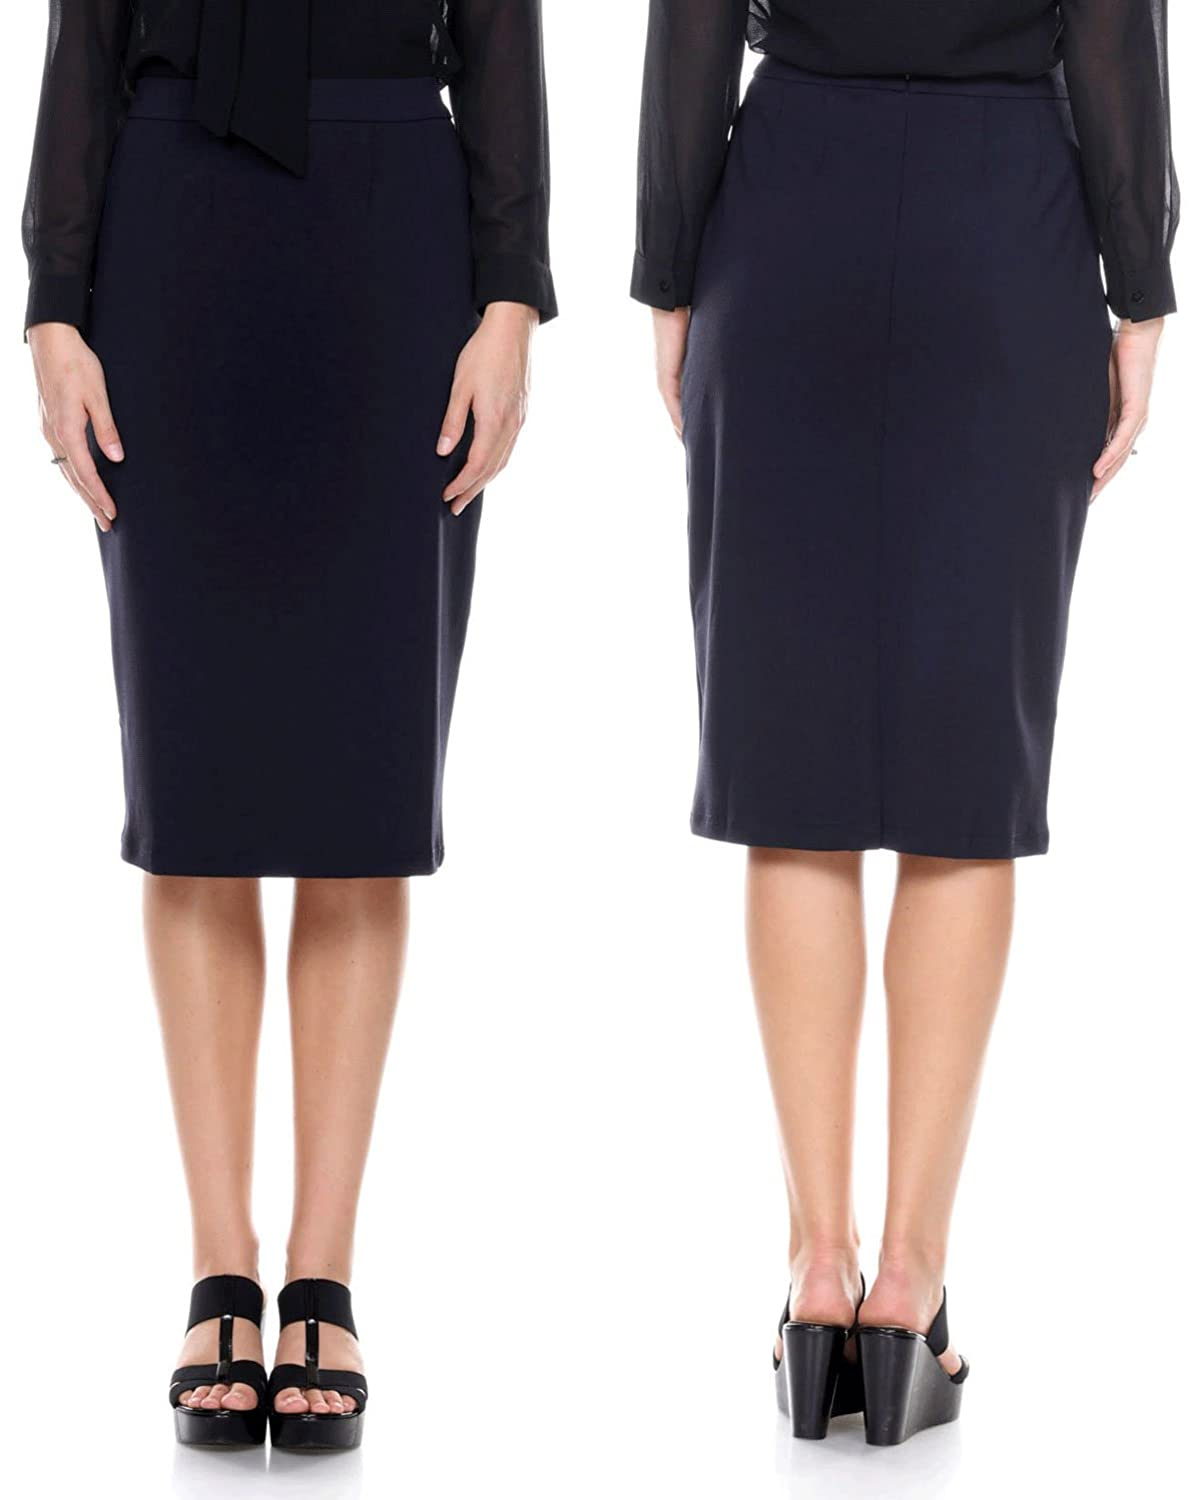 96803d430 Women's Solid High Waisted Below the Knee Length Pencil Skirt for Office  Wear, Navy, Small at Amazon Women's Clothing store: